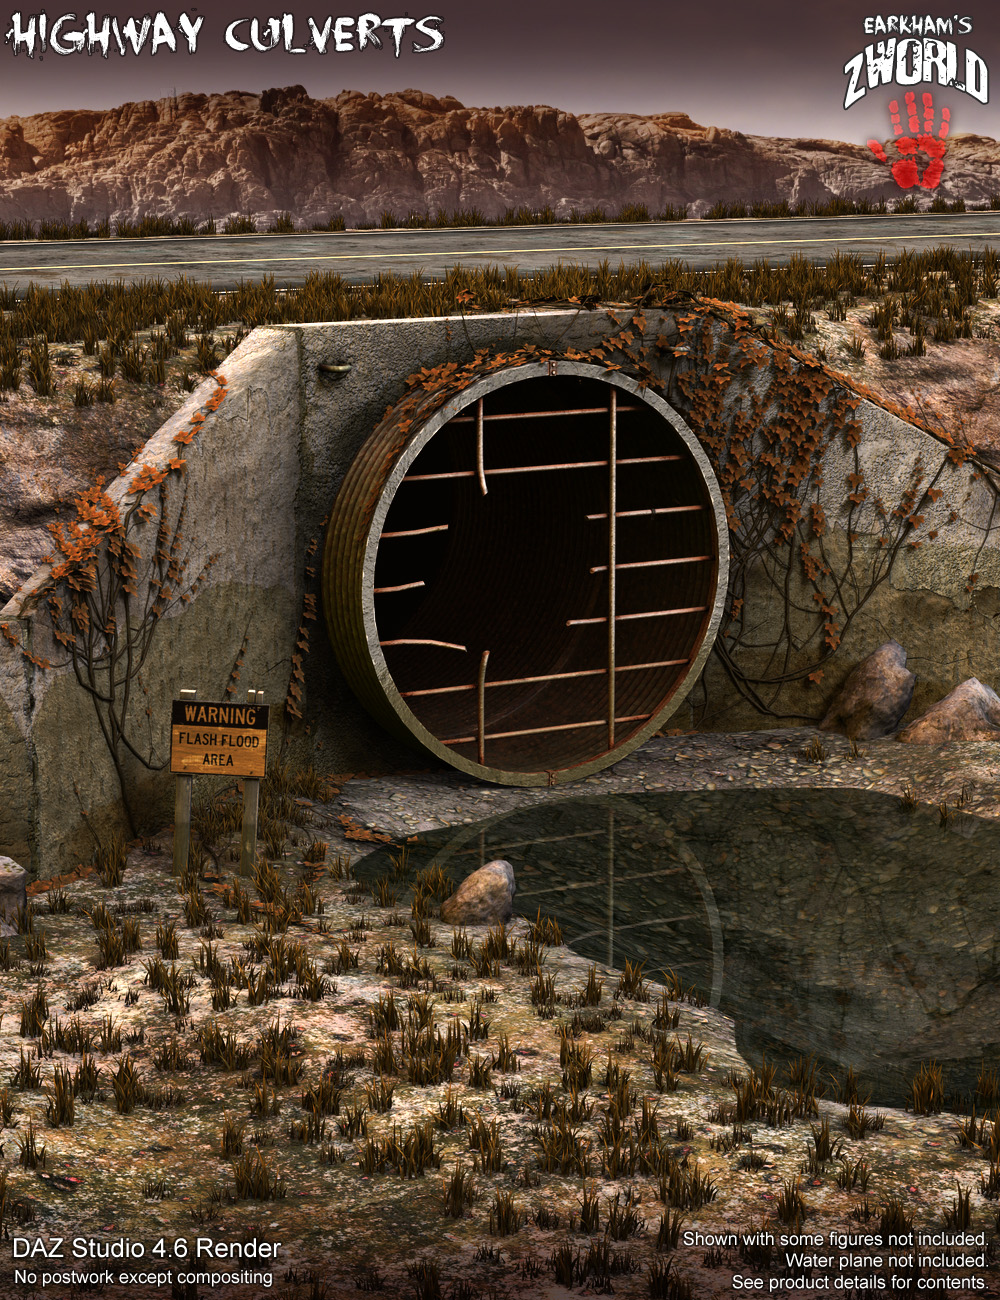 EArkham's ZWorld Highway Culverts by: E-Arkham, 3D Models by Daz 3D